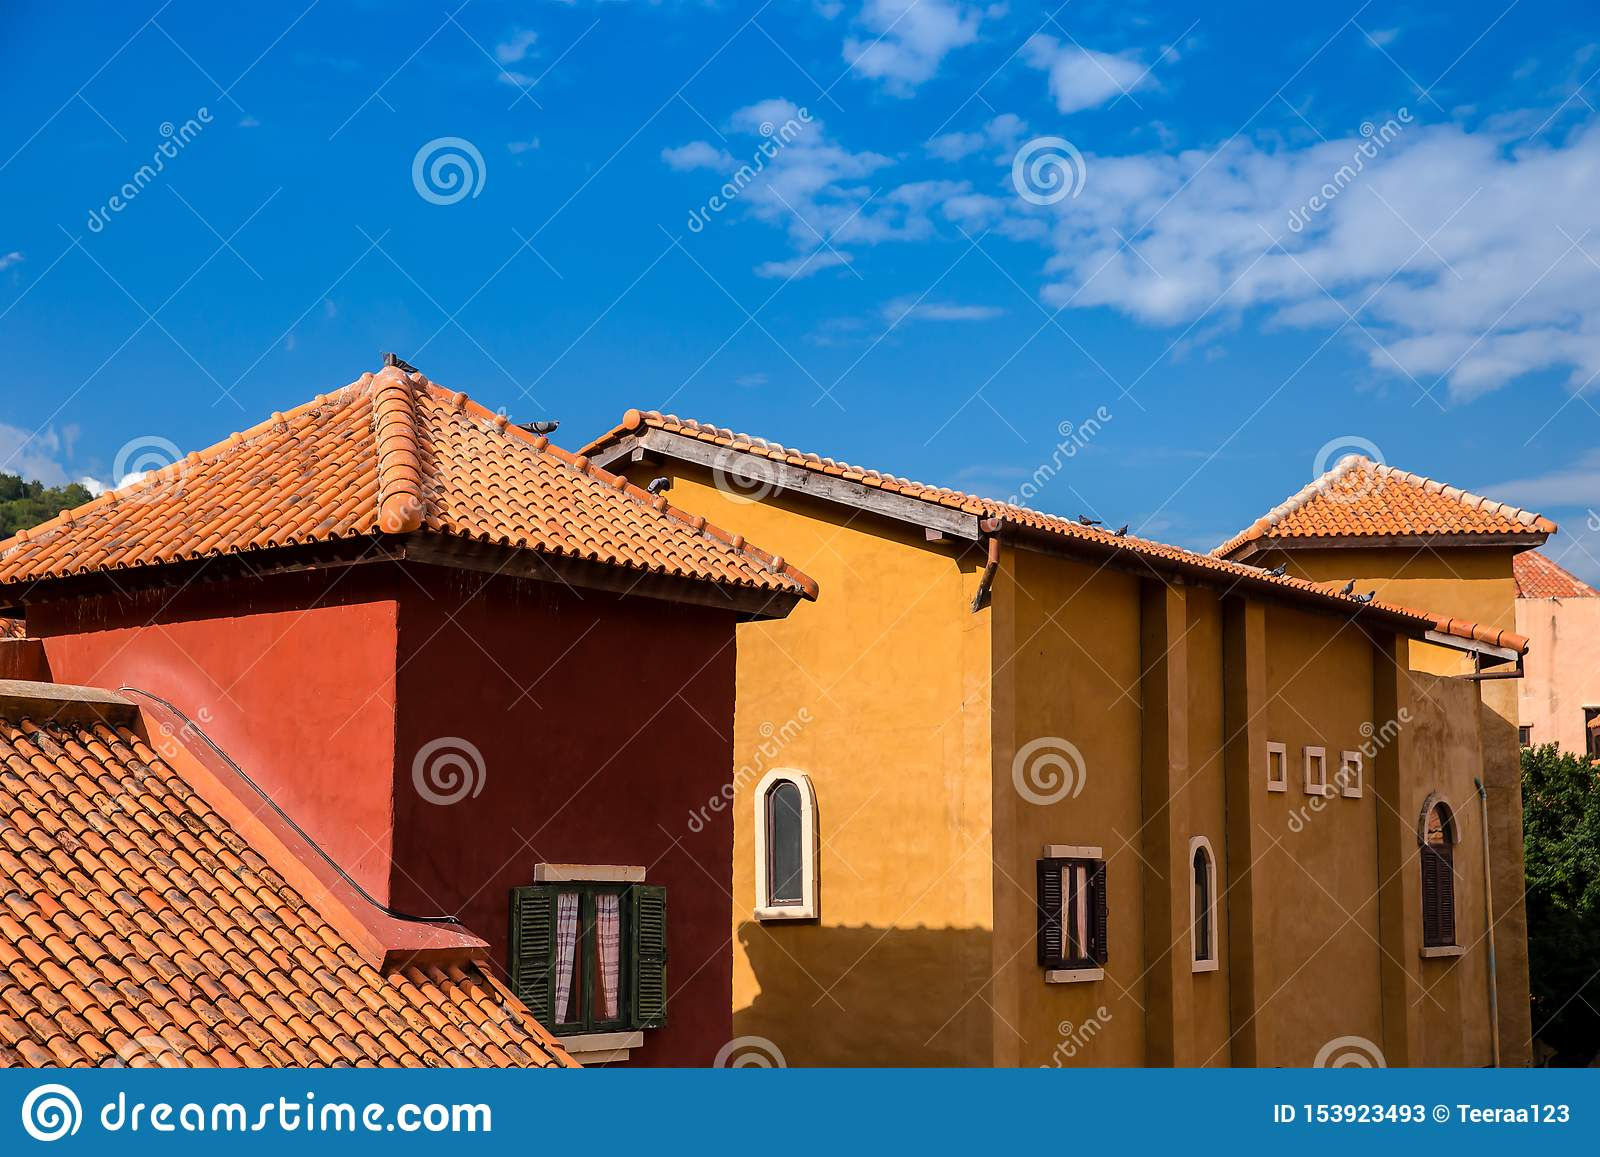 Roof Tile Rooftop Tile Brick Built Structure Stock Image Image Of Cottage Spanish 153923493